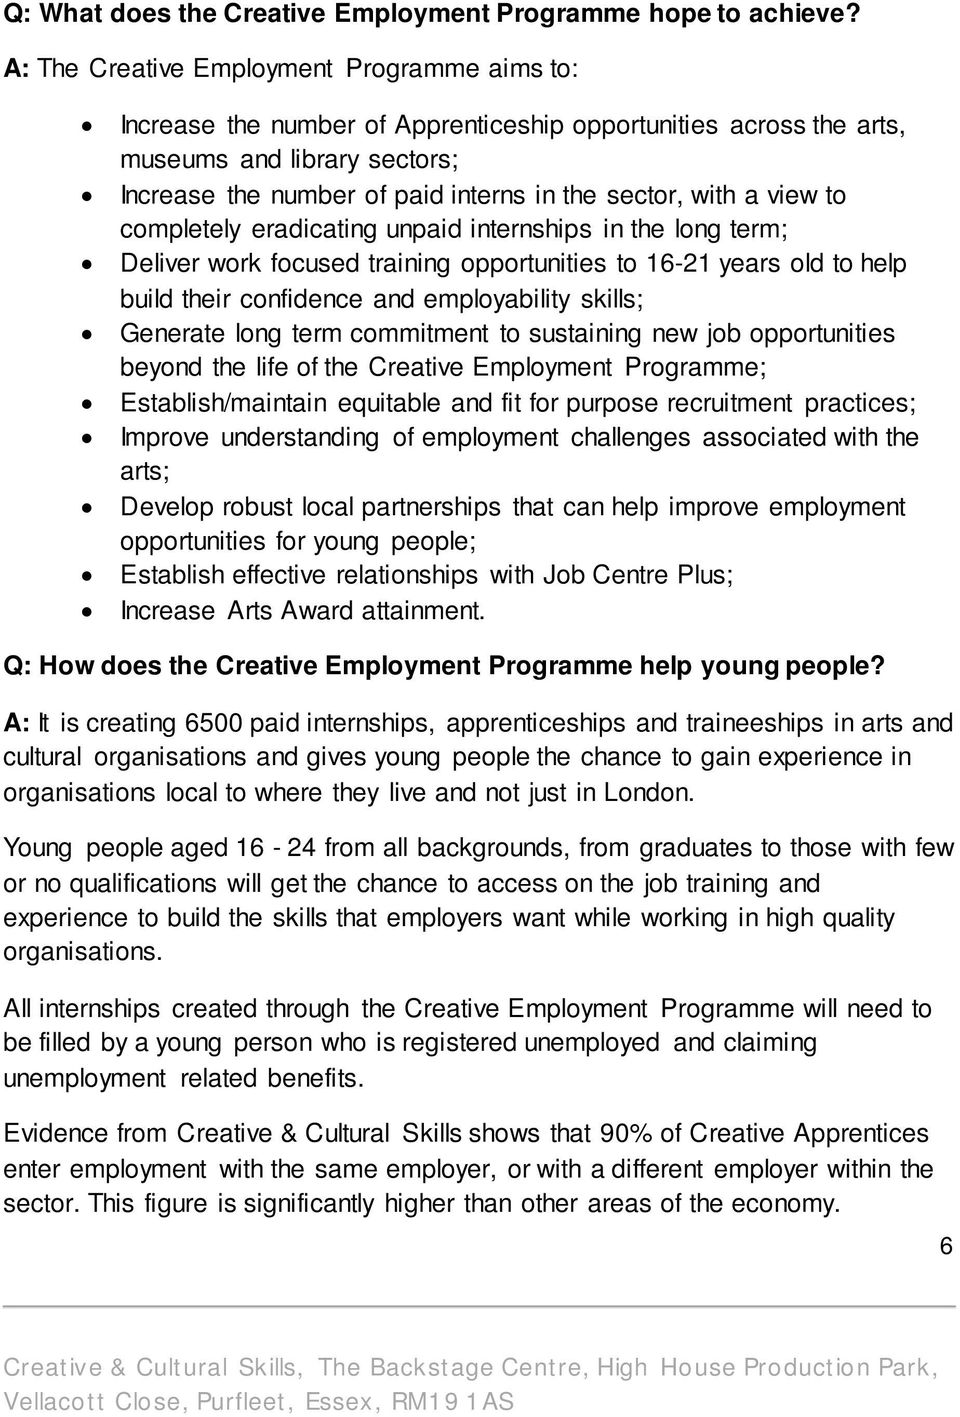 a view to completely eradicating unpaid internships in the long term; Deliver work focused training opportunities to 16-21 years old to help build their confidence and employability skills; Generate